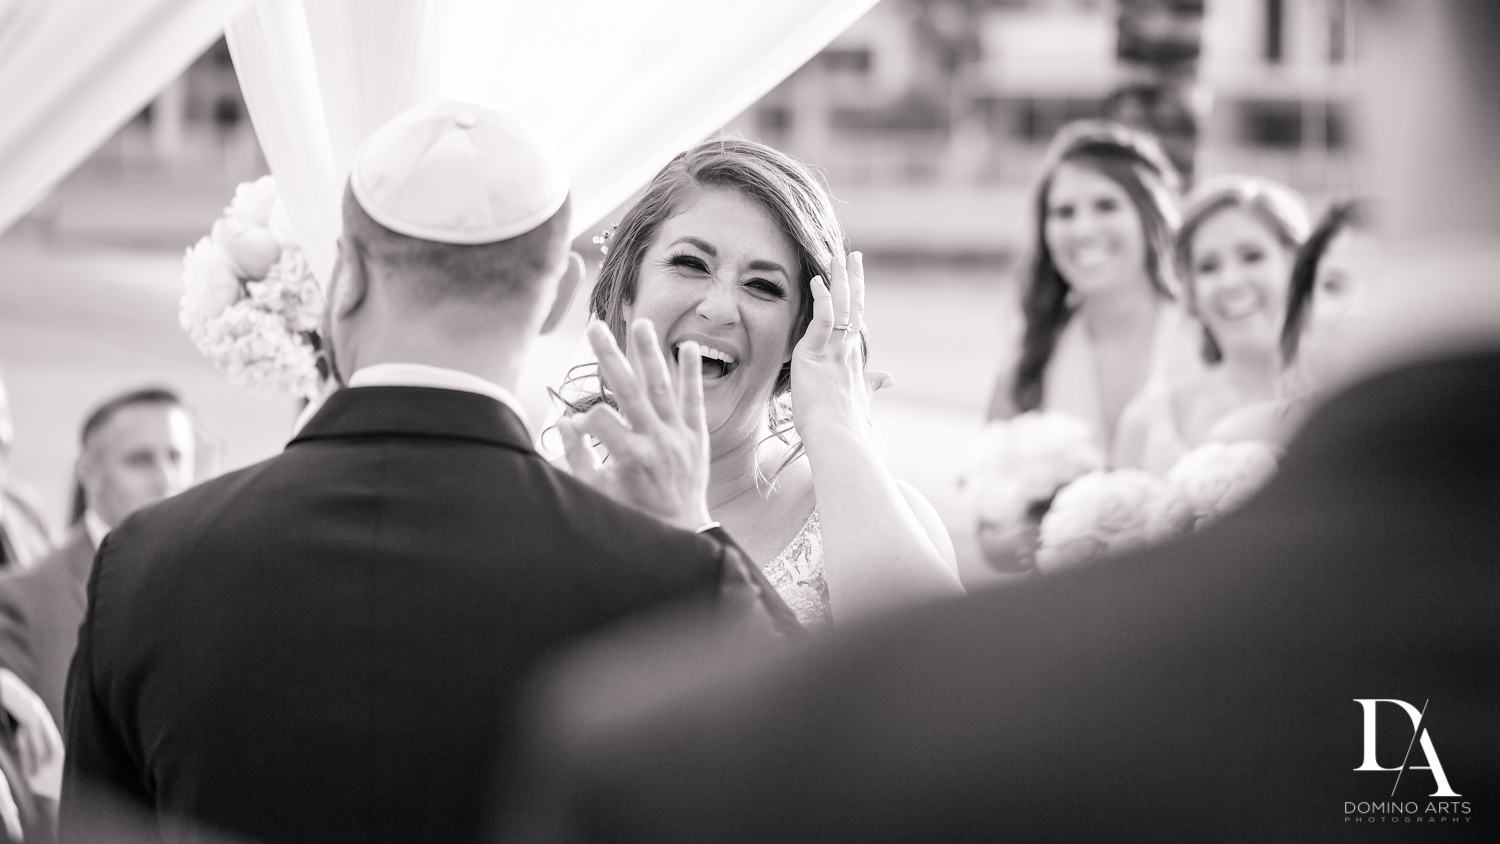 Candid pictures at Romantic Outdoors Wedding at Woodfield Country Club in Boca Raton, Florida by Domino Arts Photography